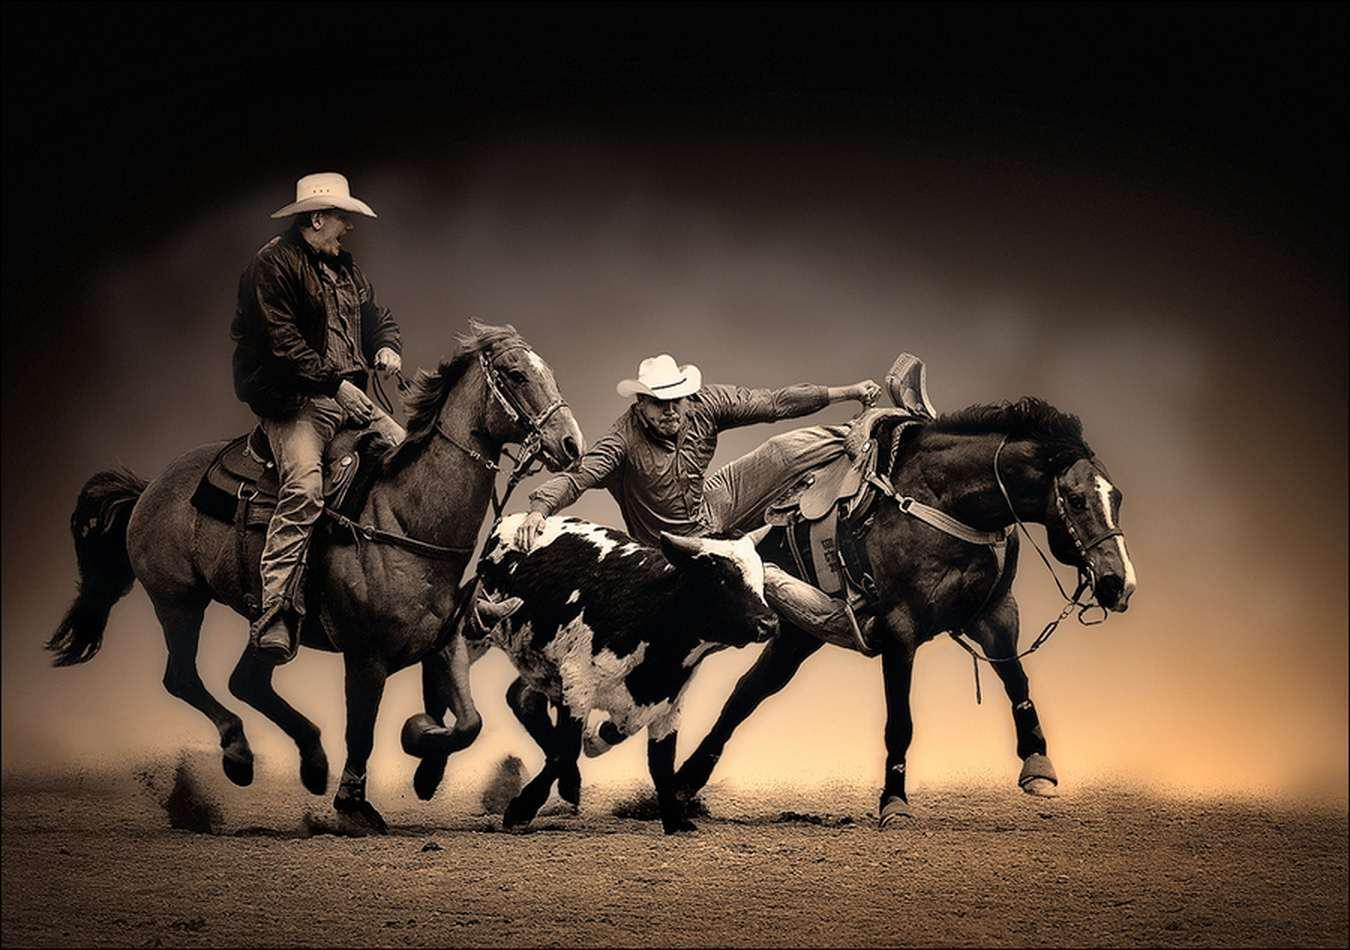 Rodeo 4k Wallpapers Top Free Rodeo 4k Backgrounds Wallpaperaccess